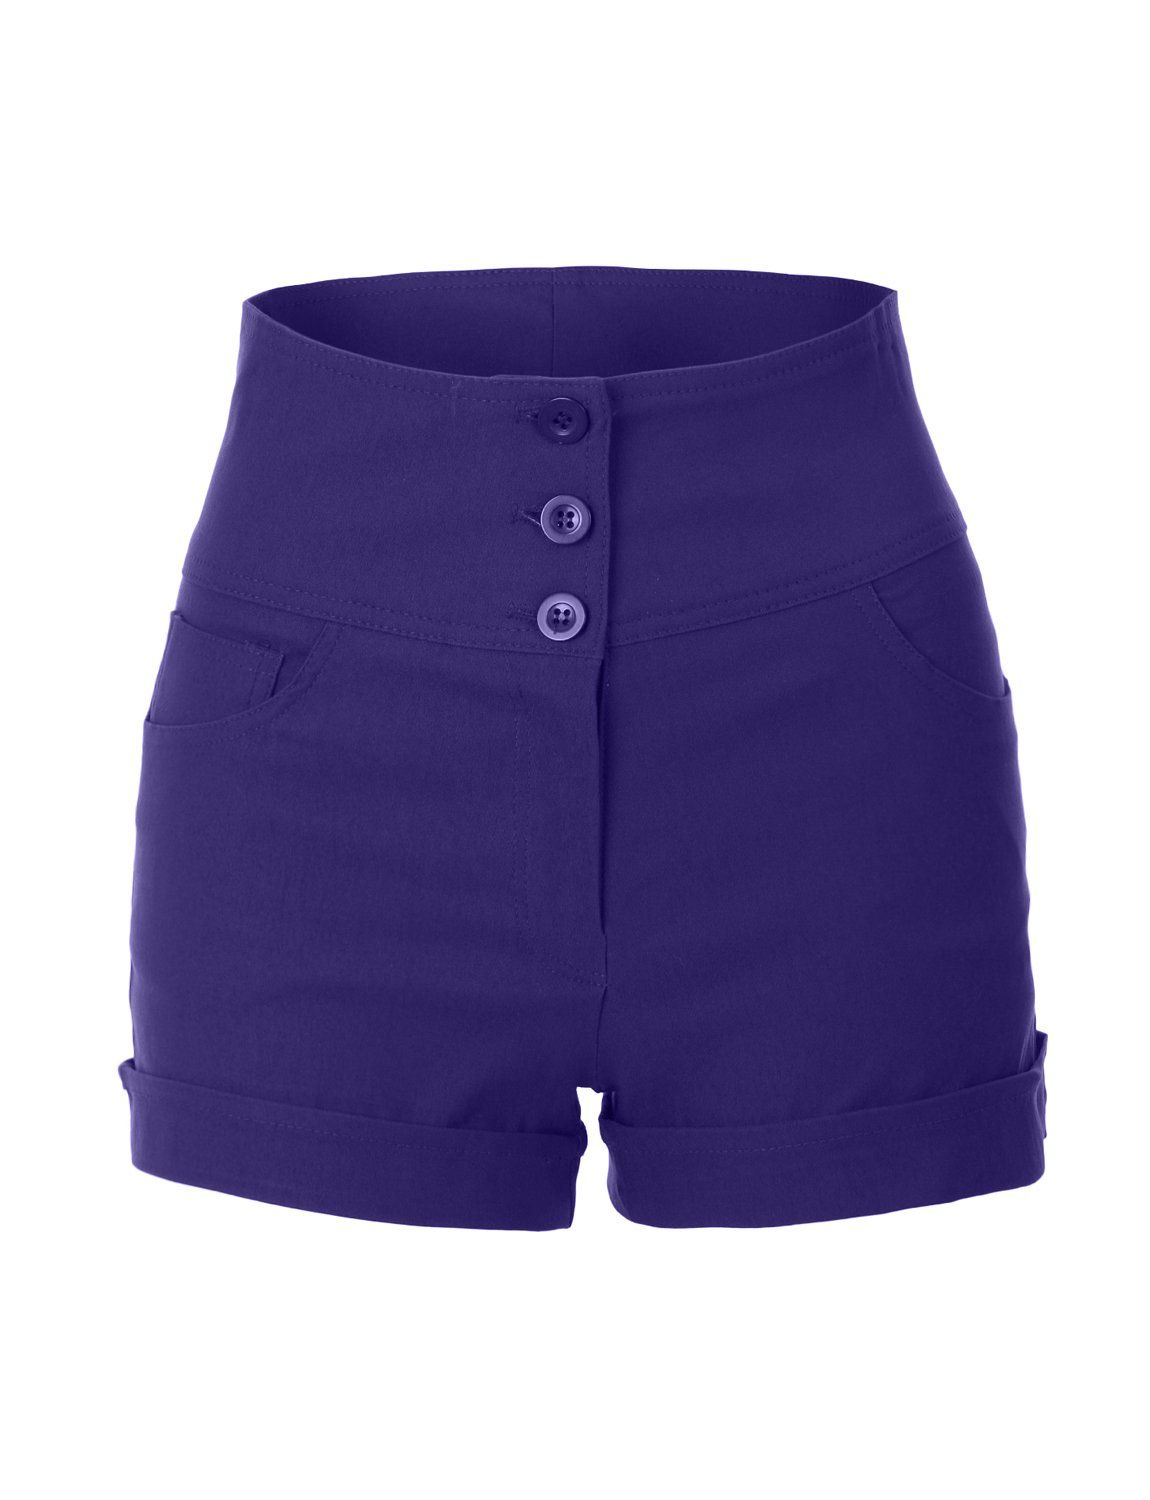 RubyK Womens High Waisted Sailor Shorts with Stretch at Amazon Women's Clothing store: